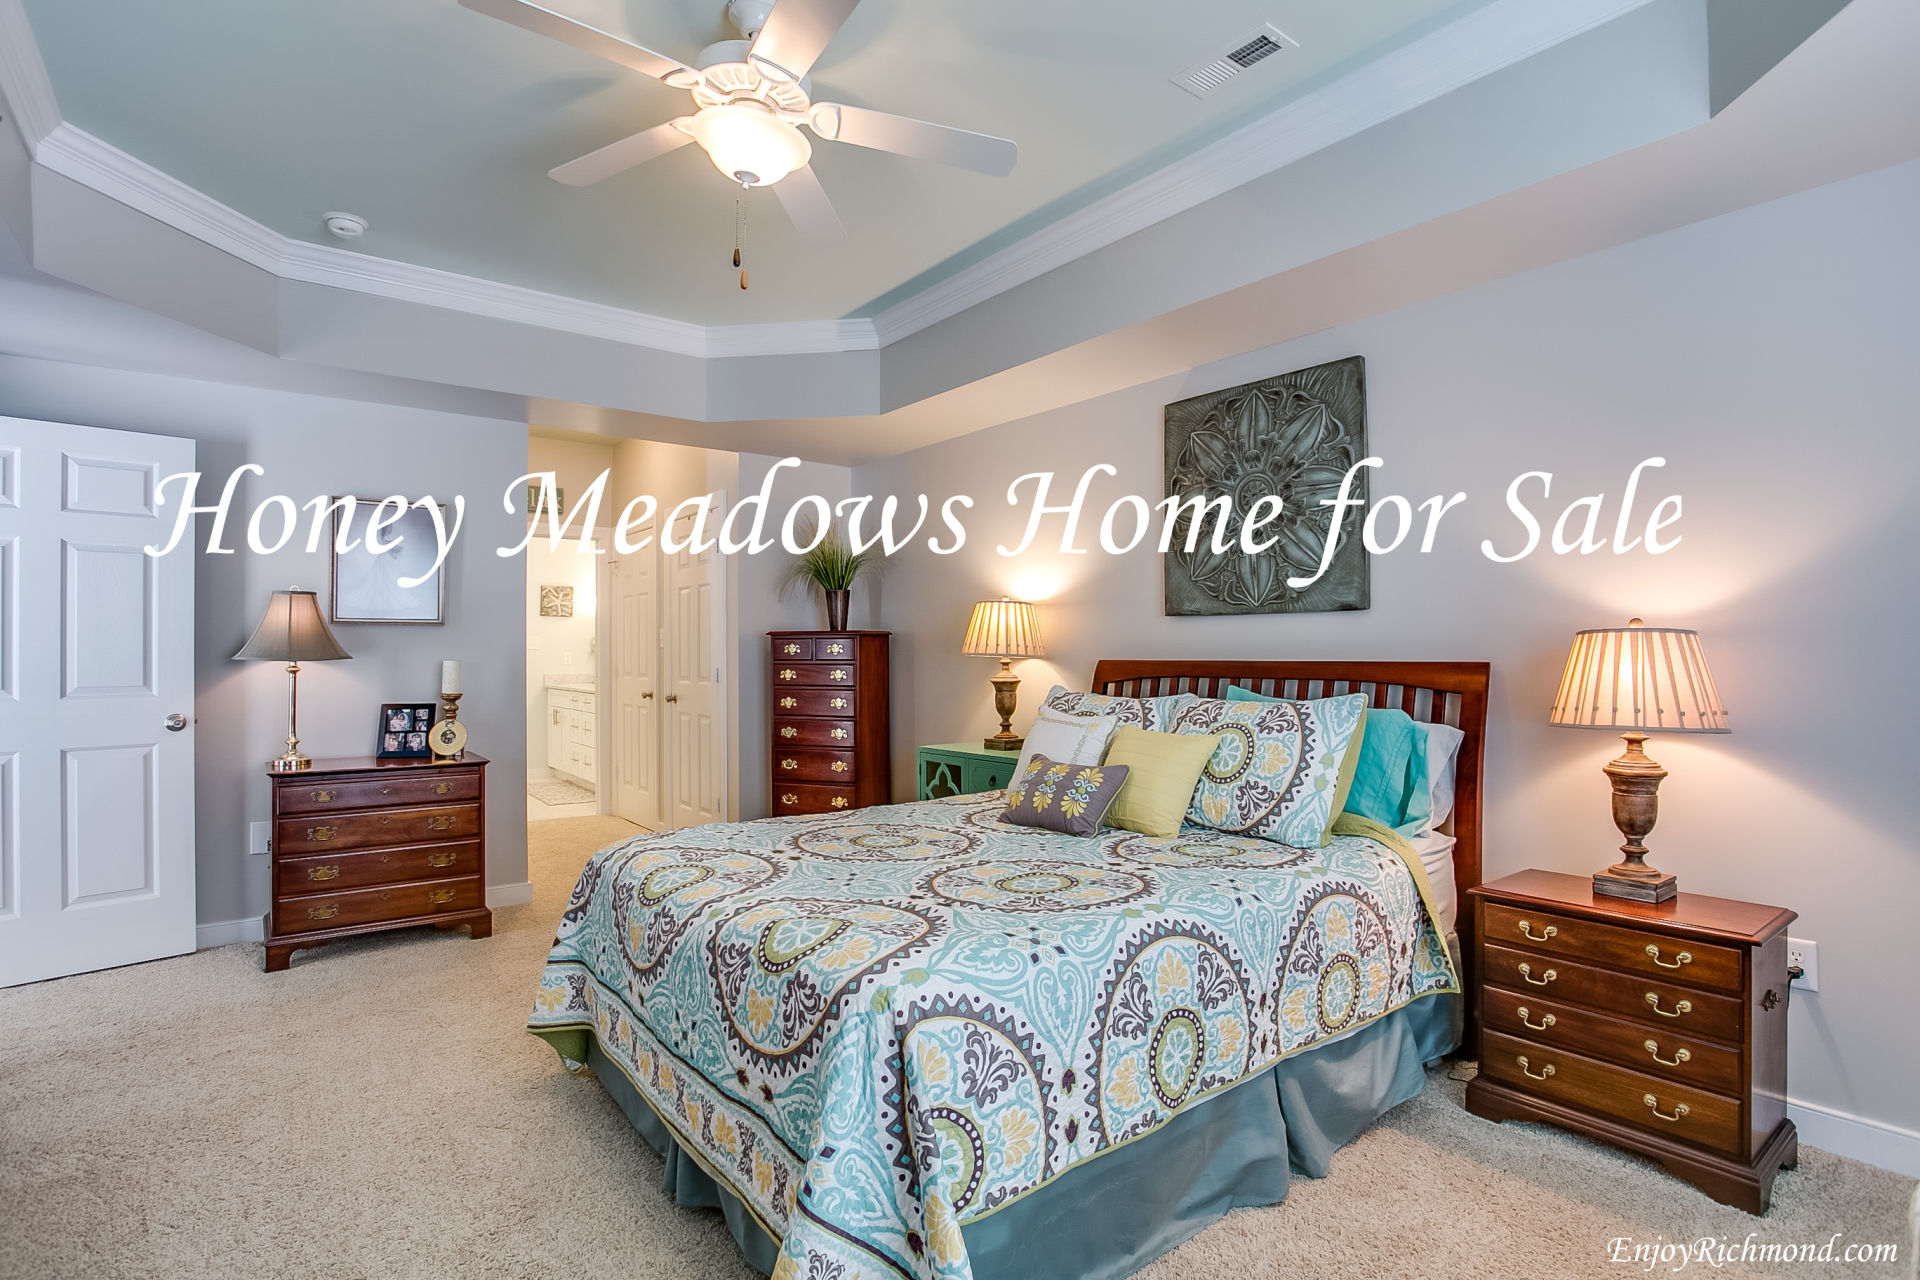 Honey Meadows Homes for Sale | 10200 Waxcomb Place Mechanicsville Va 23116 | Just Listed by Jake Albritton with Keller Williams Realty